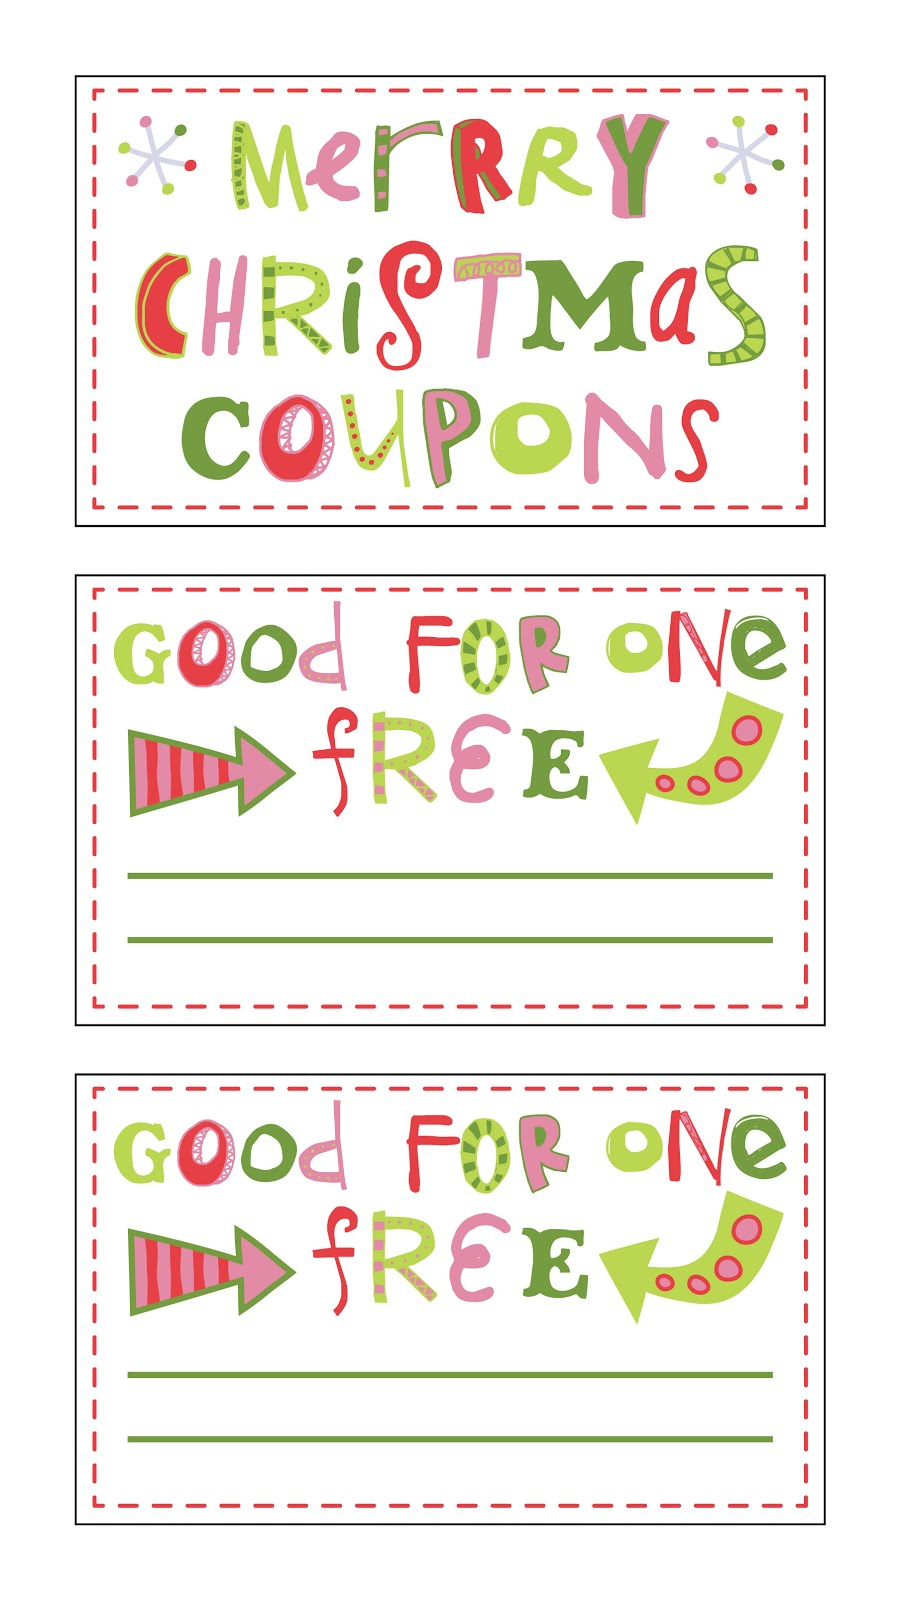 It is an image of Old Fashioned Printable Christmas Coupons